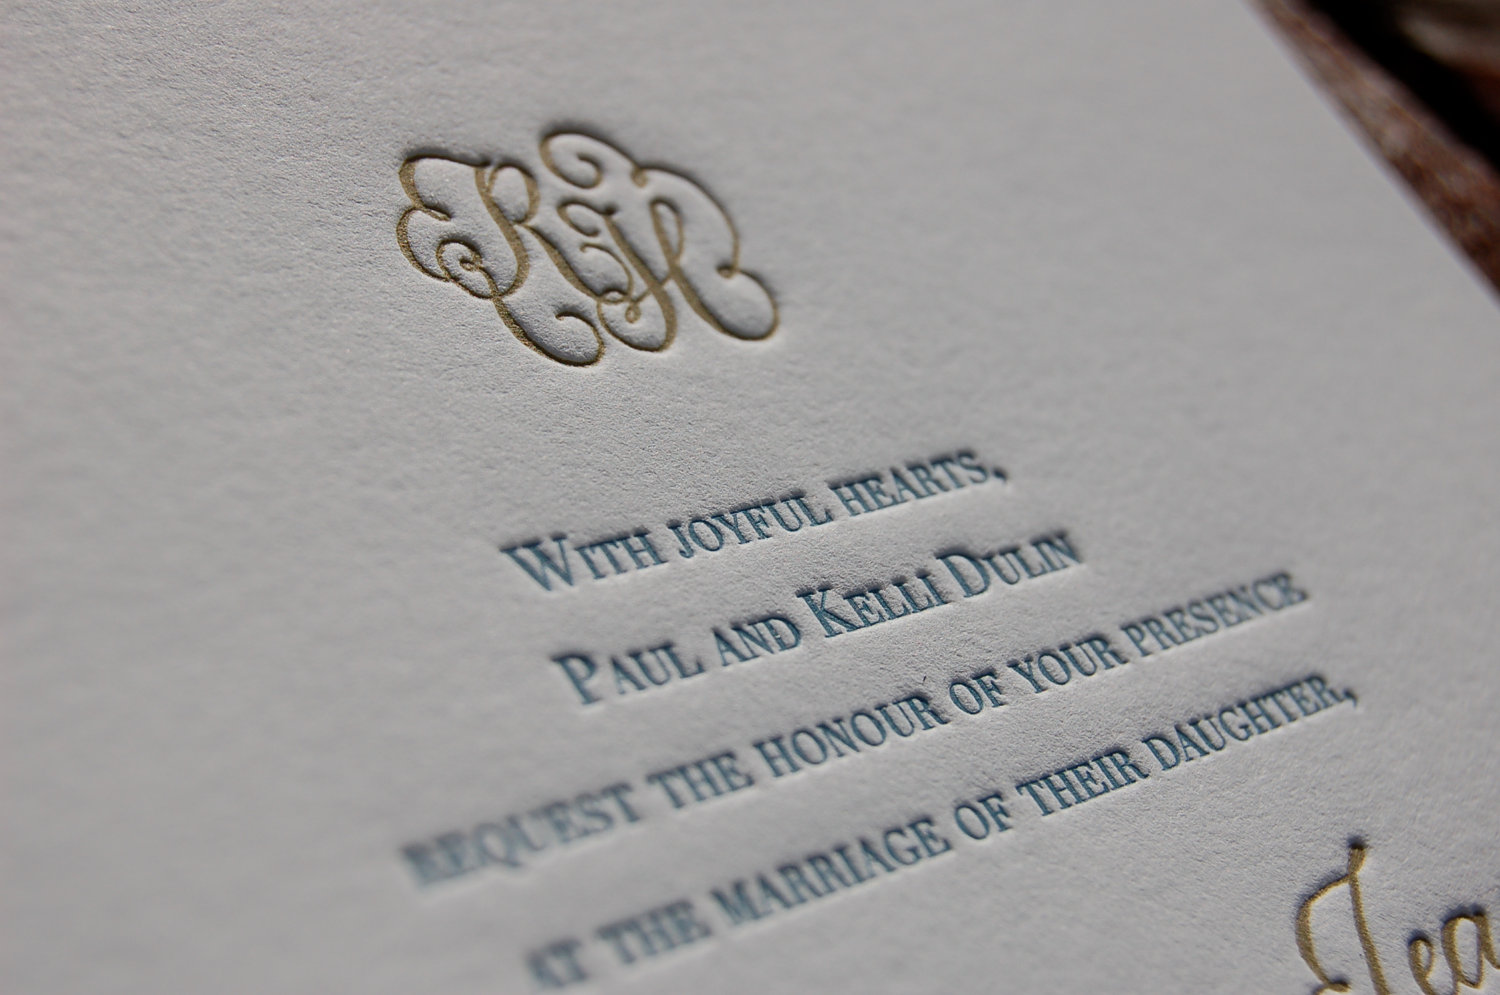 Lovely Letterpress Invites Handmade By Elecia At Dancing Pen And Press.